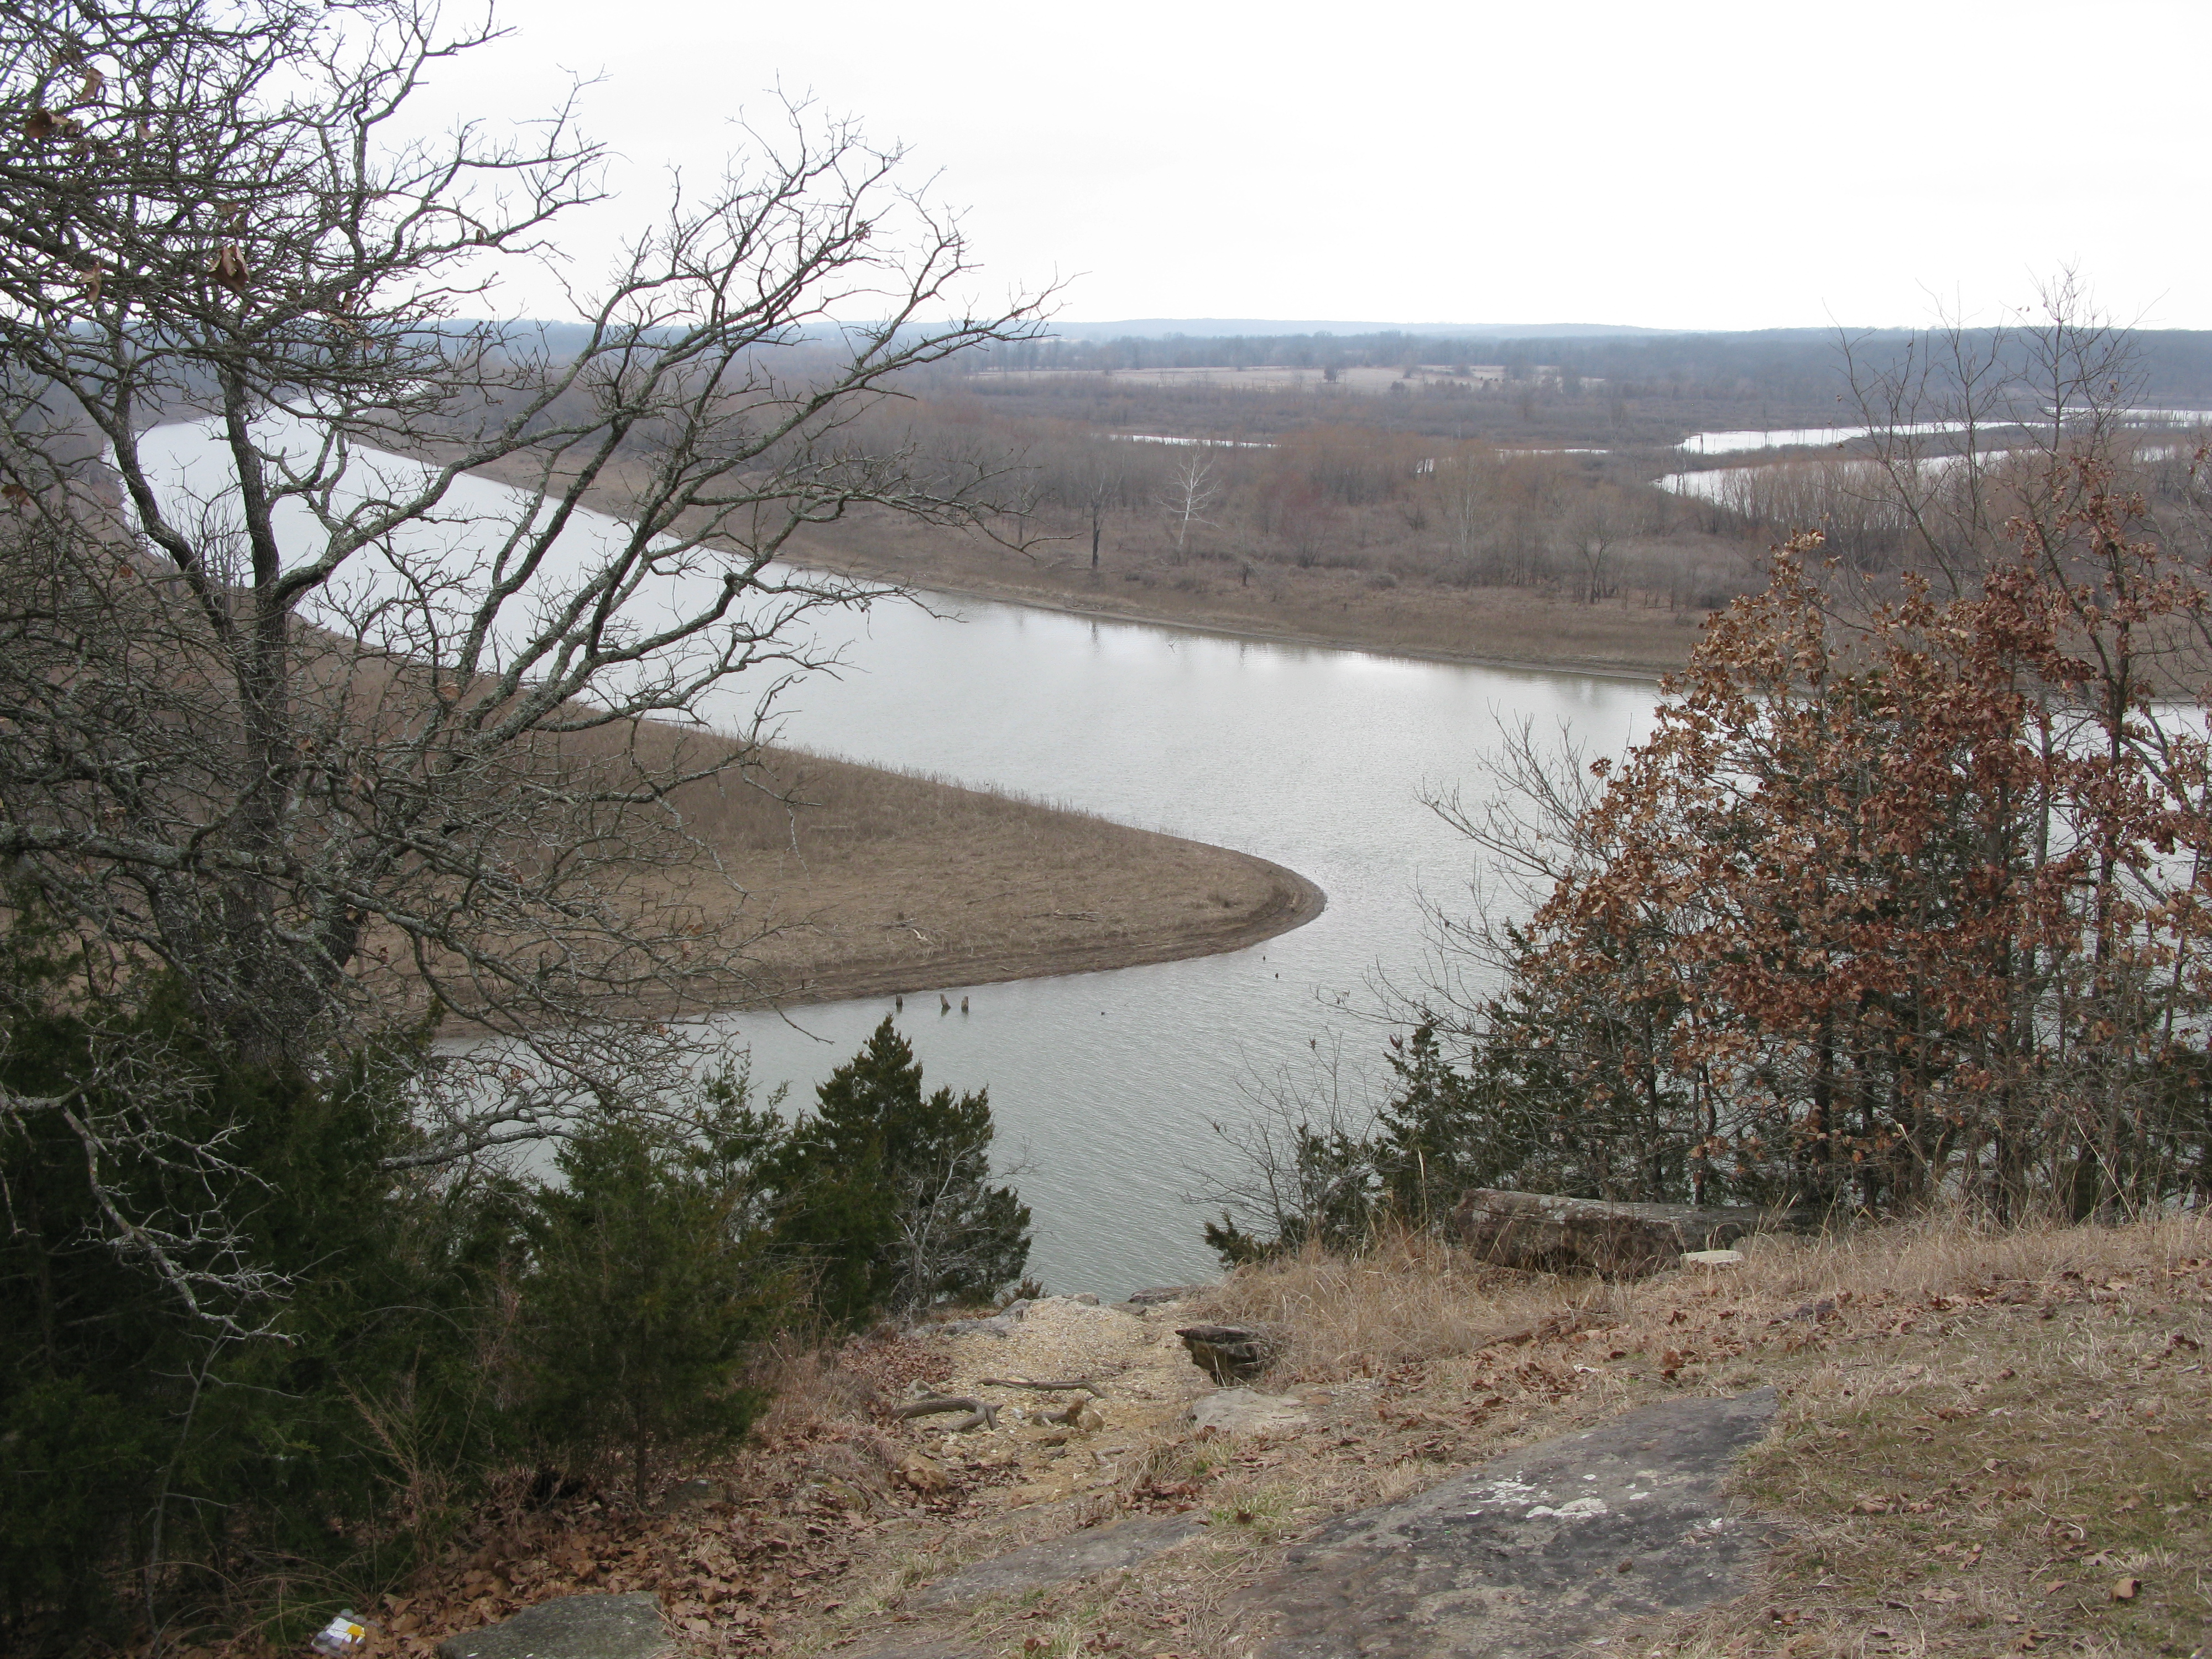 Sac River Damming The Osage - A long river